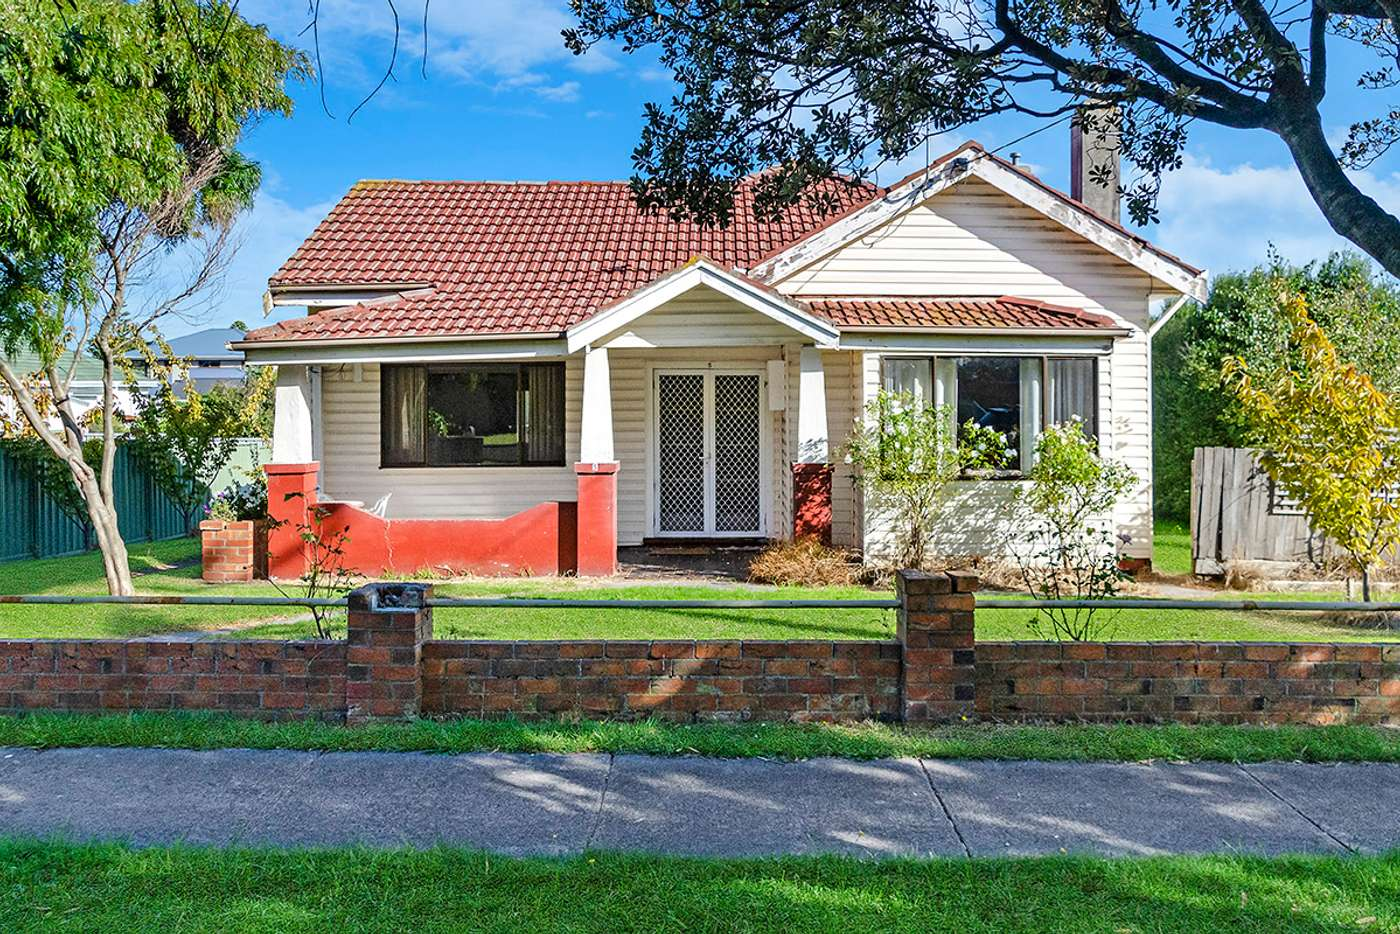 Main view of Homely house listing, 5 Townsend Street, Portland VIC 3305